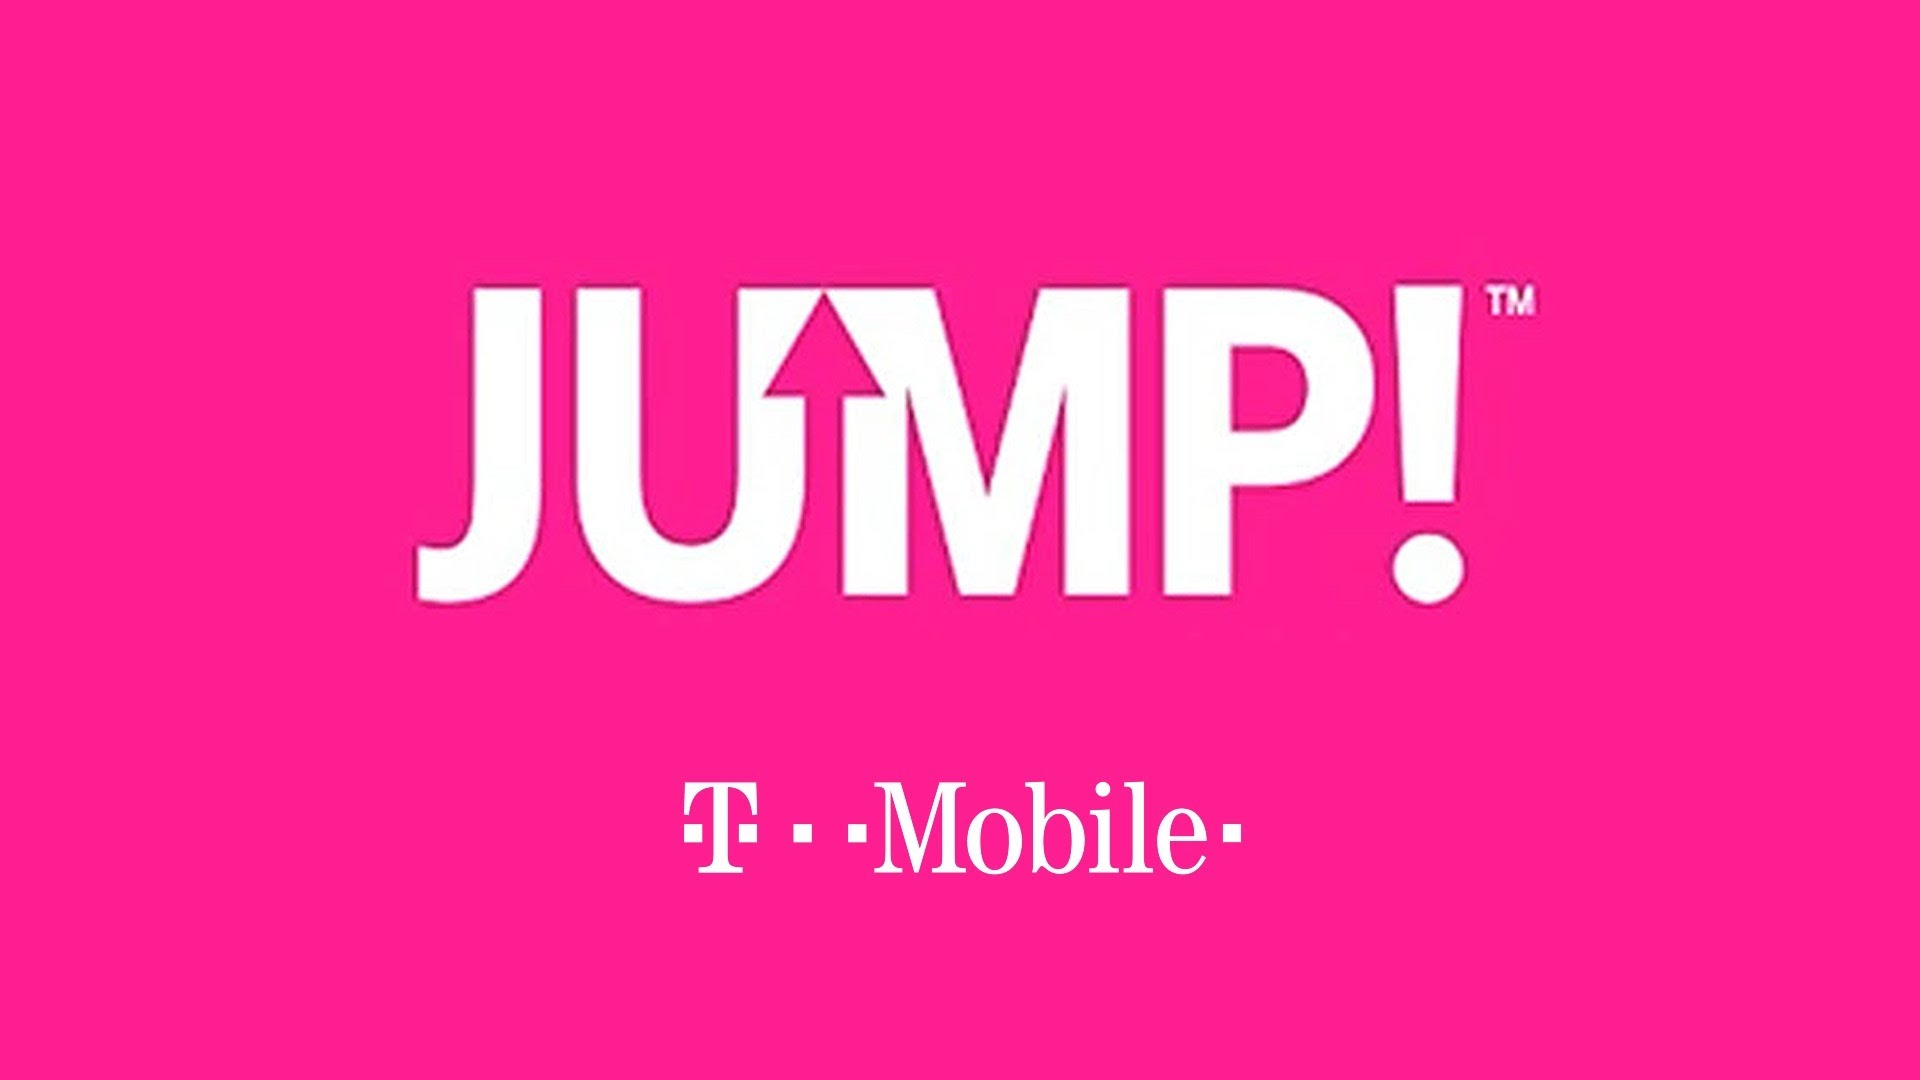 Mobile jump pro consumer or odd loophole